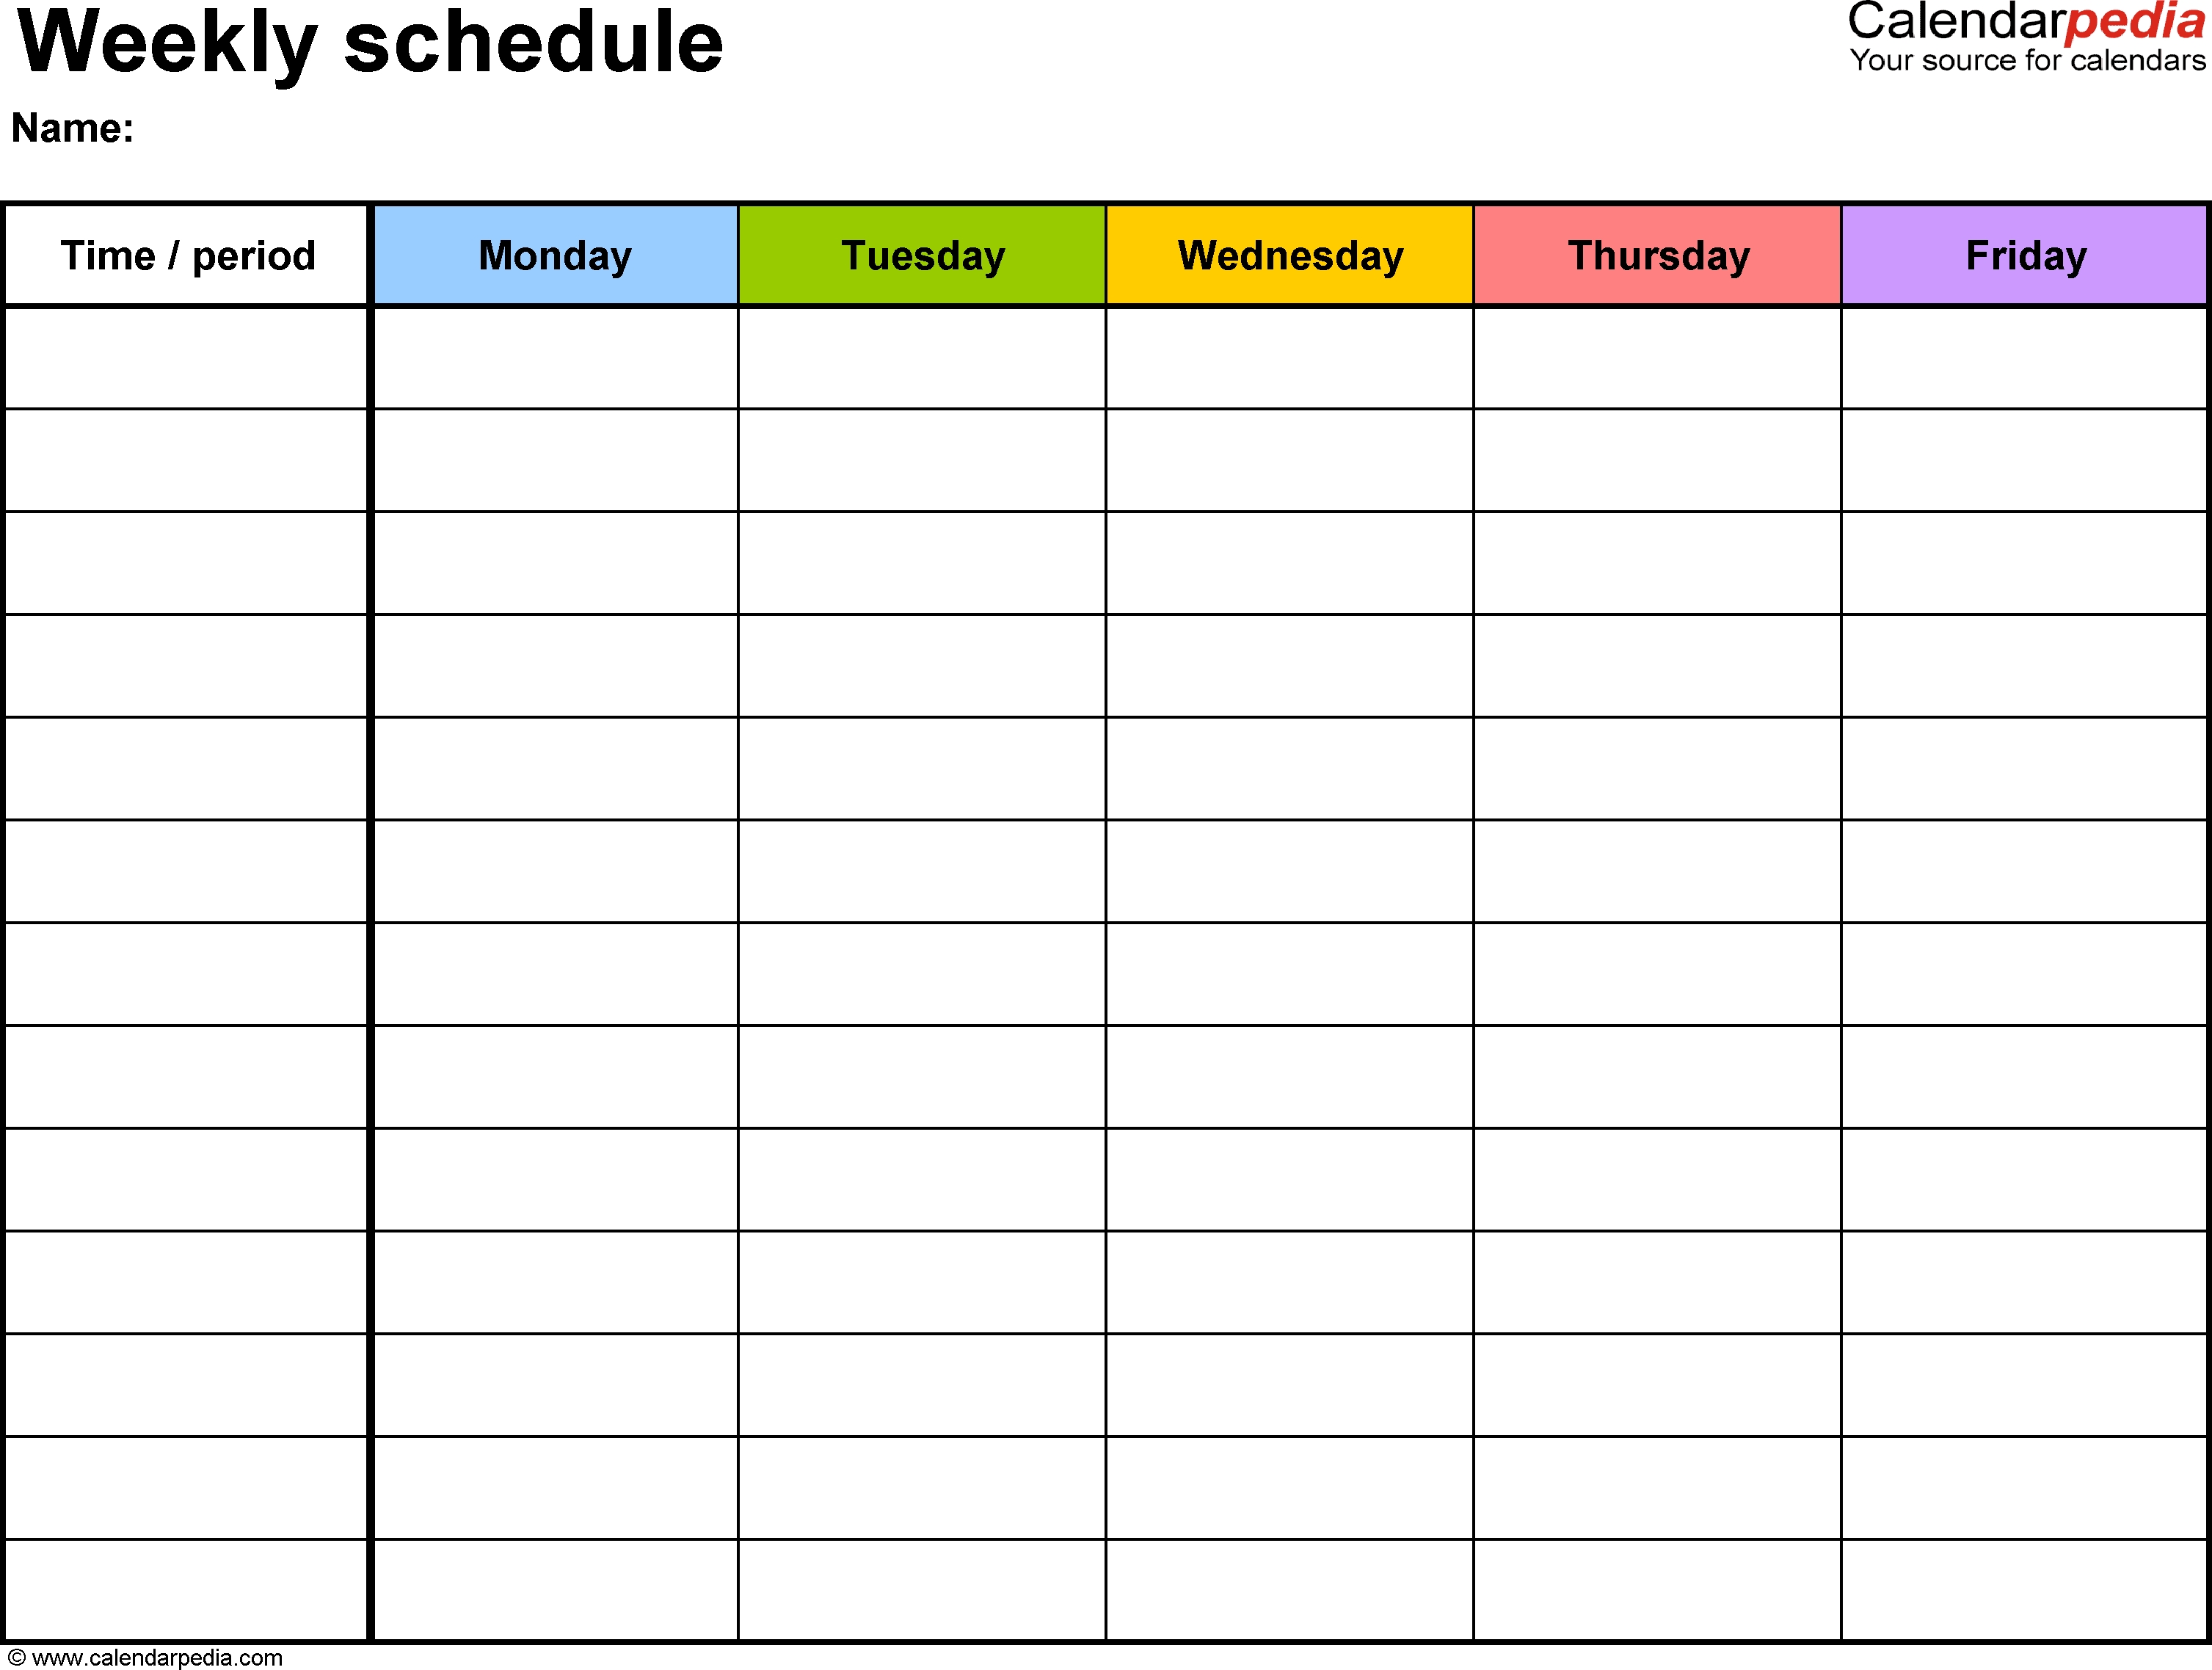 Free Weekly Schedule Templates For Word - 18 Templates-Blank Monday Through Friday Calendars